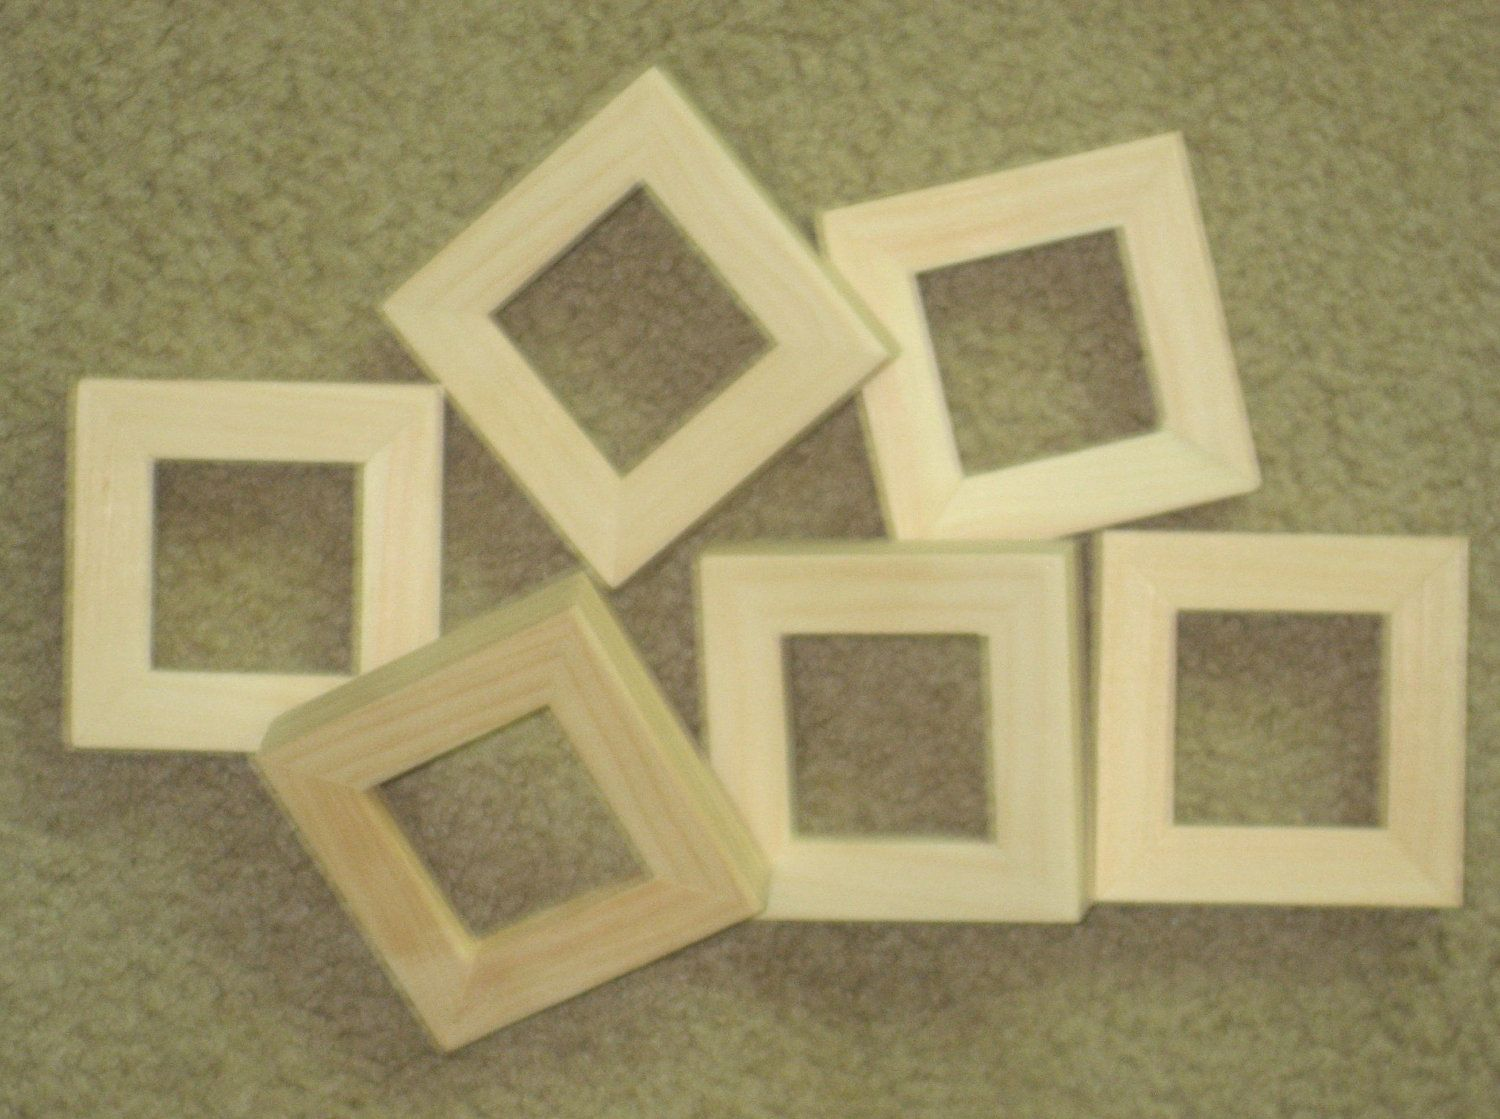 6 unfinished 3x3 wood picture frames for ultrasound pictures 6 unfinished 3x3 wood picture frames for ultrasound pictures jeuxipadfo Choice Image